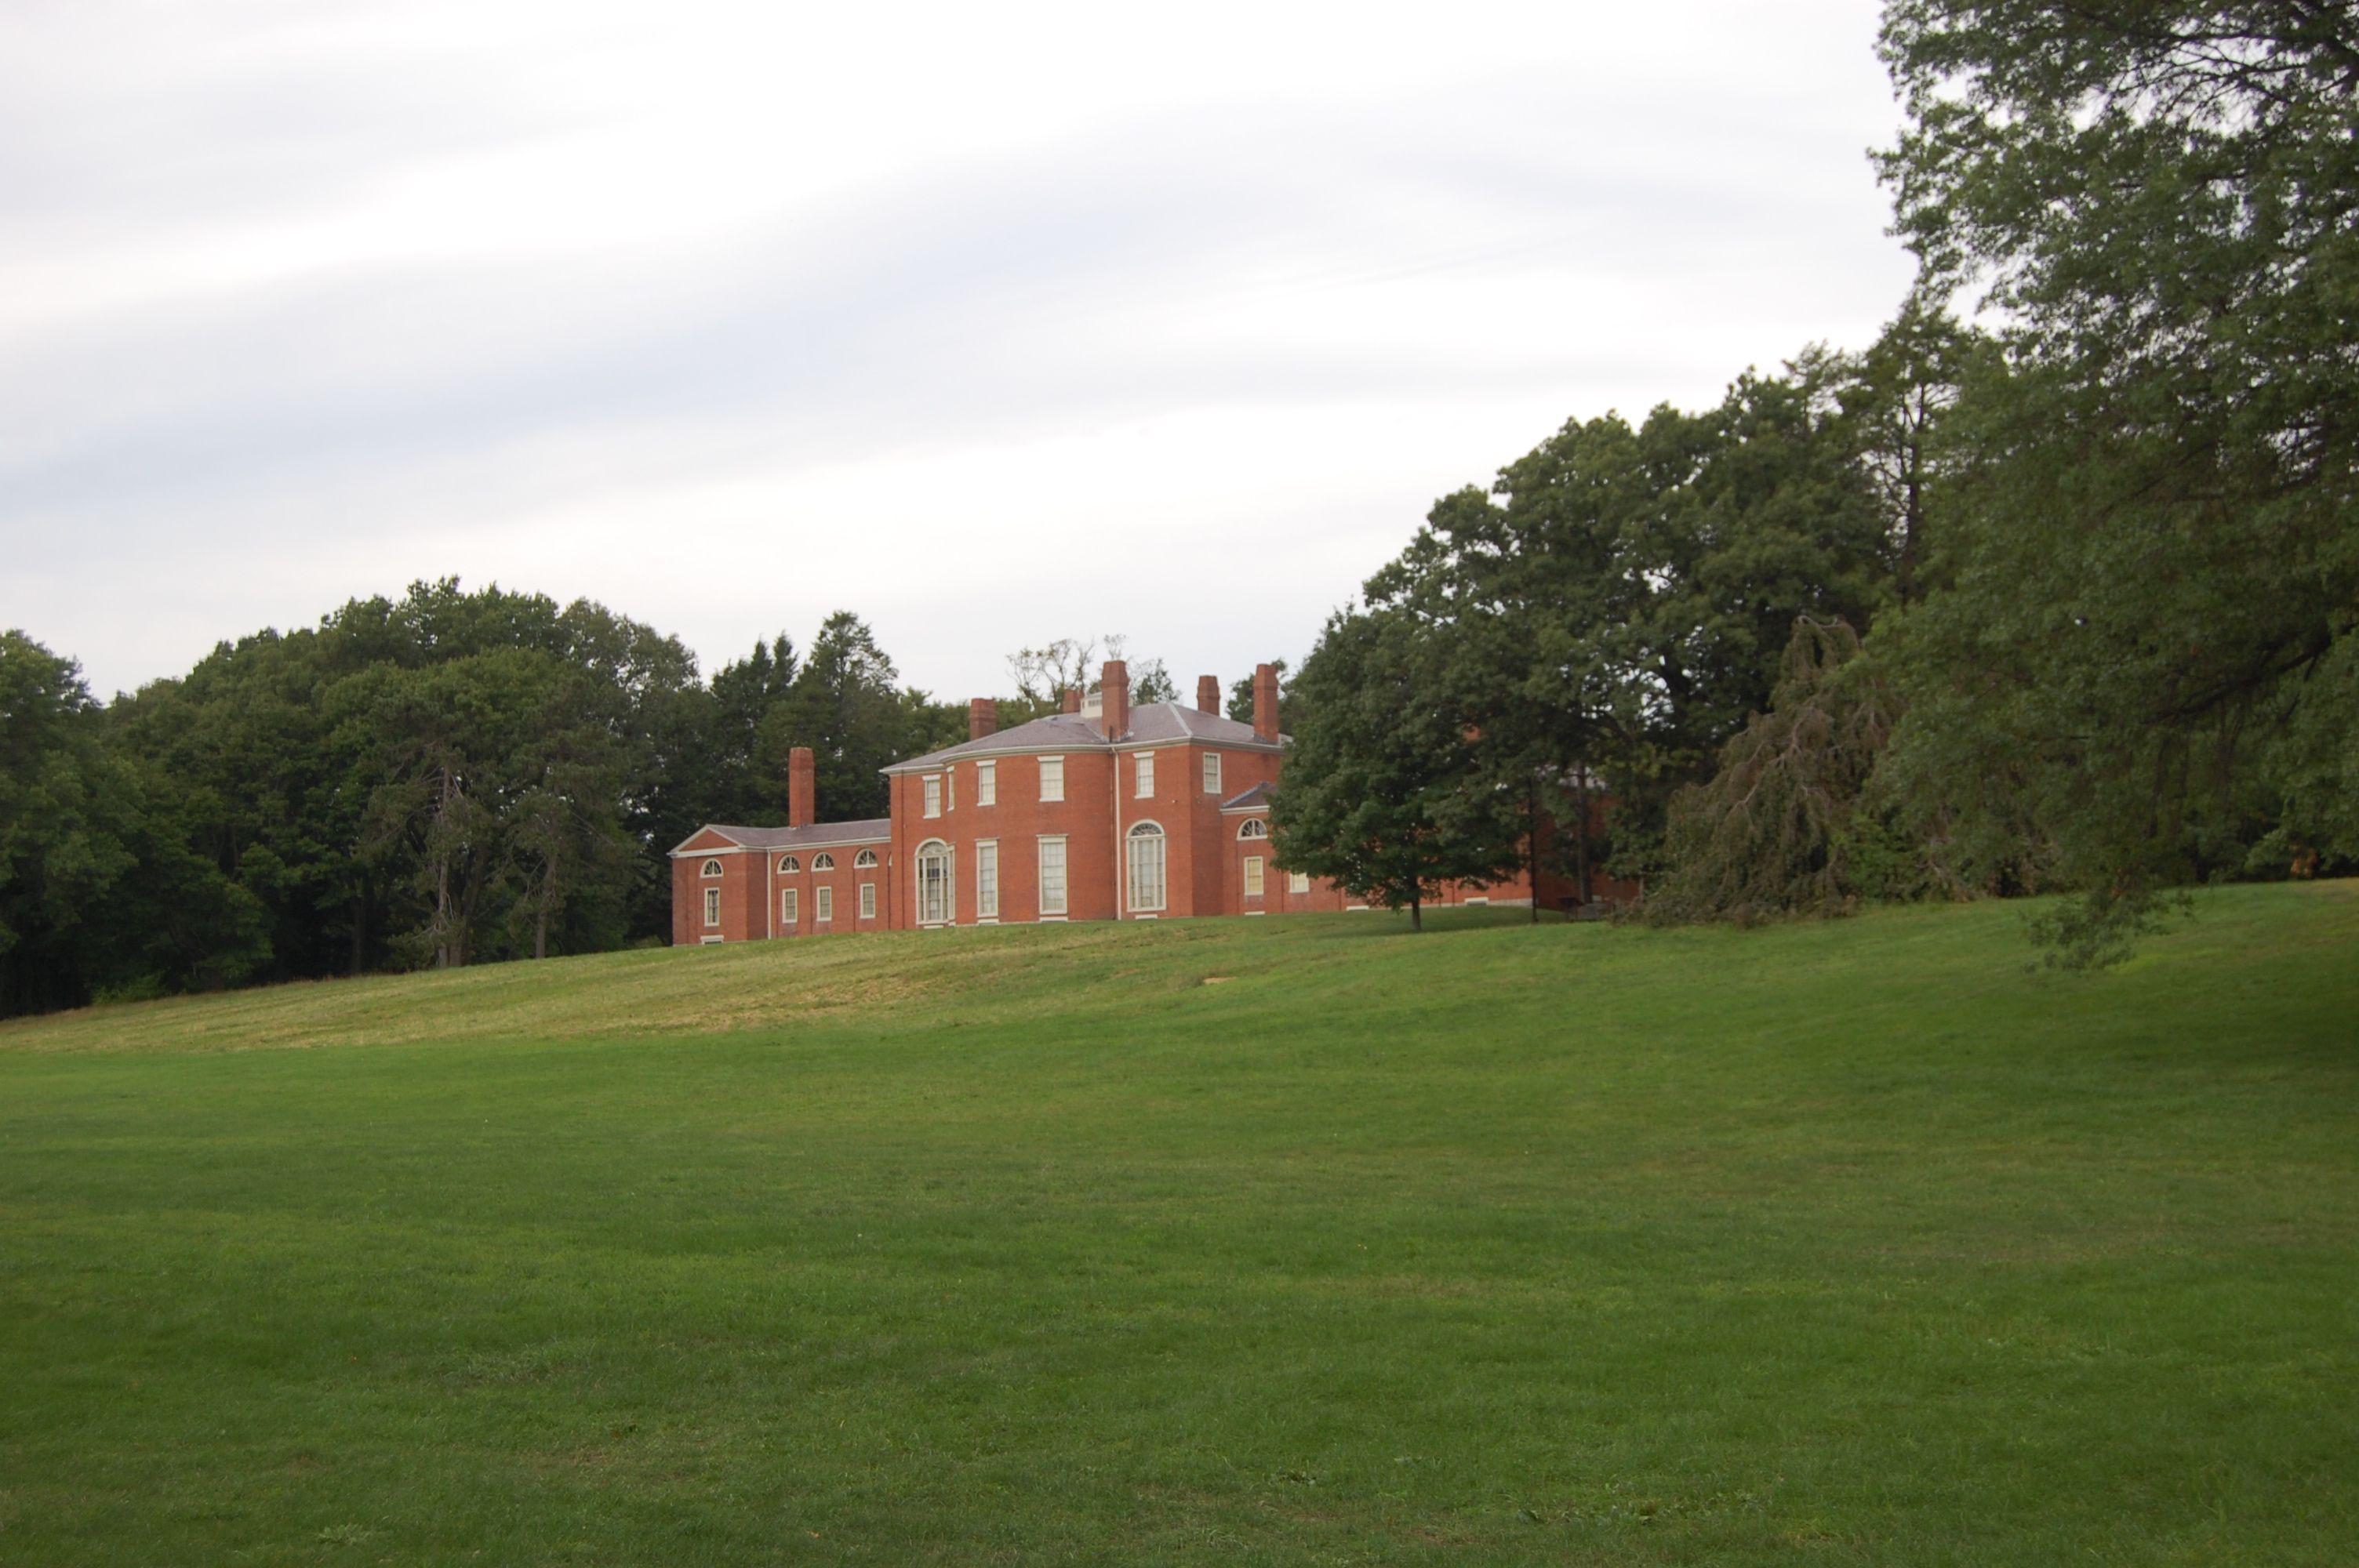 Gore Mansion and Grounds